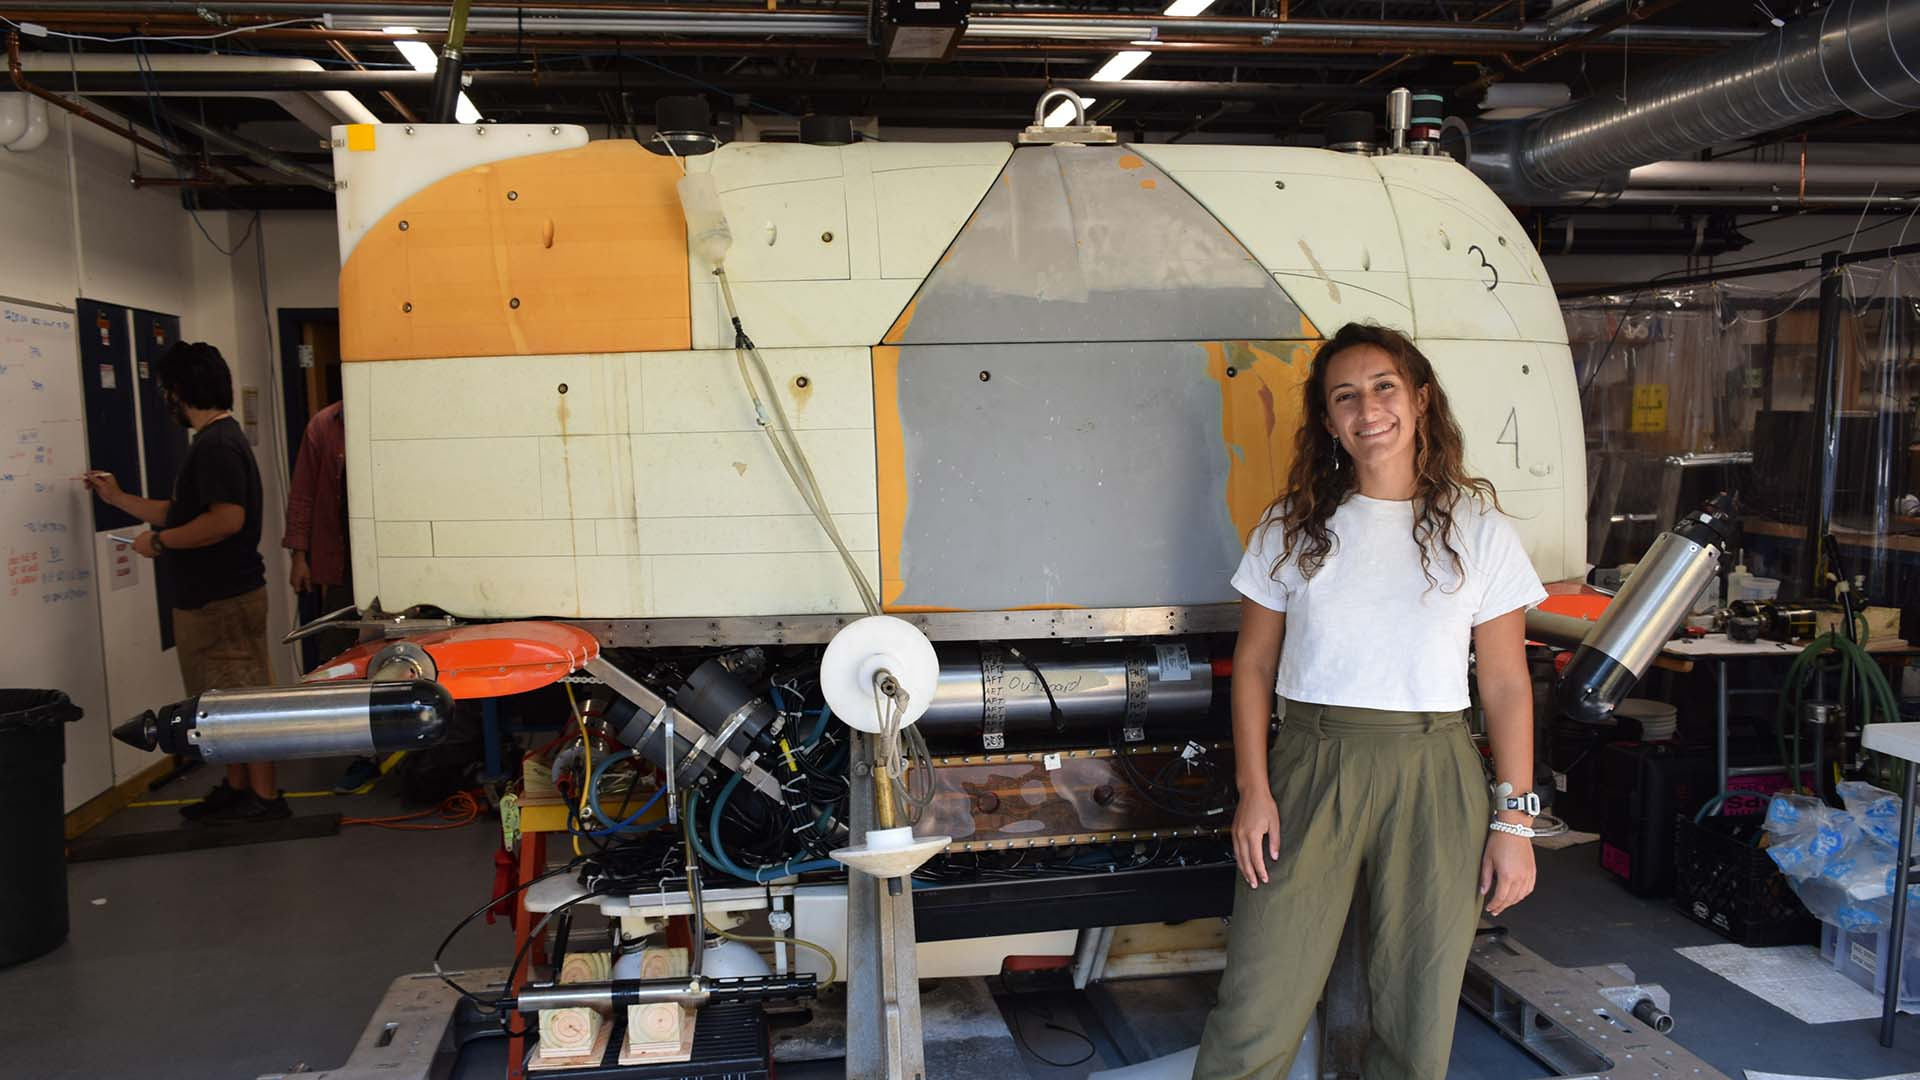 Renee Gruner-Mitchell with <em>Sentry</em> while the autonomous underwater vehicle was home for maintenance. In this picture the vehicle has its outer skin removed and syntactic foam showing. (Photo by Hannah Piecuch, © Woods Hole Oceanographic Institution)